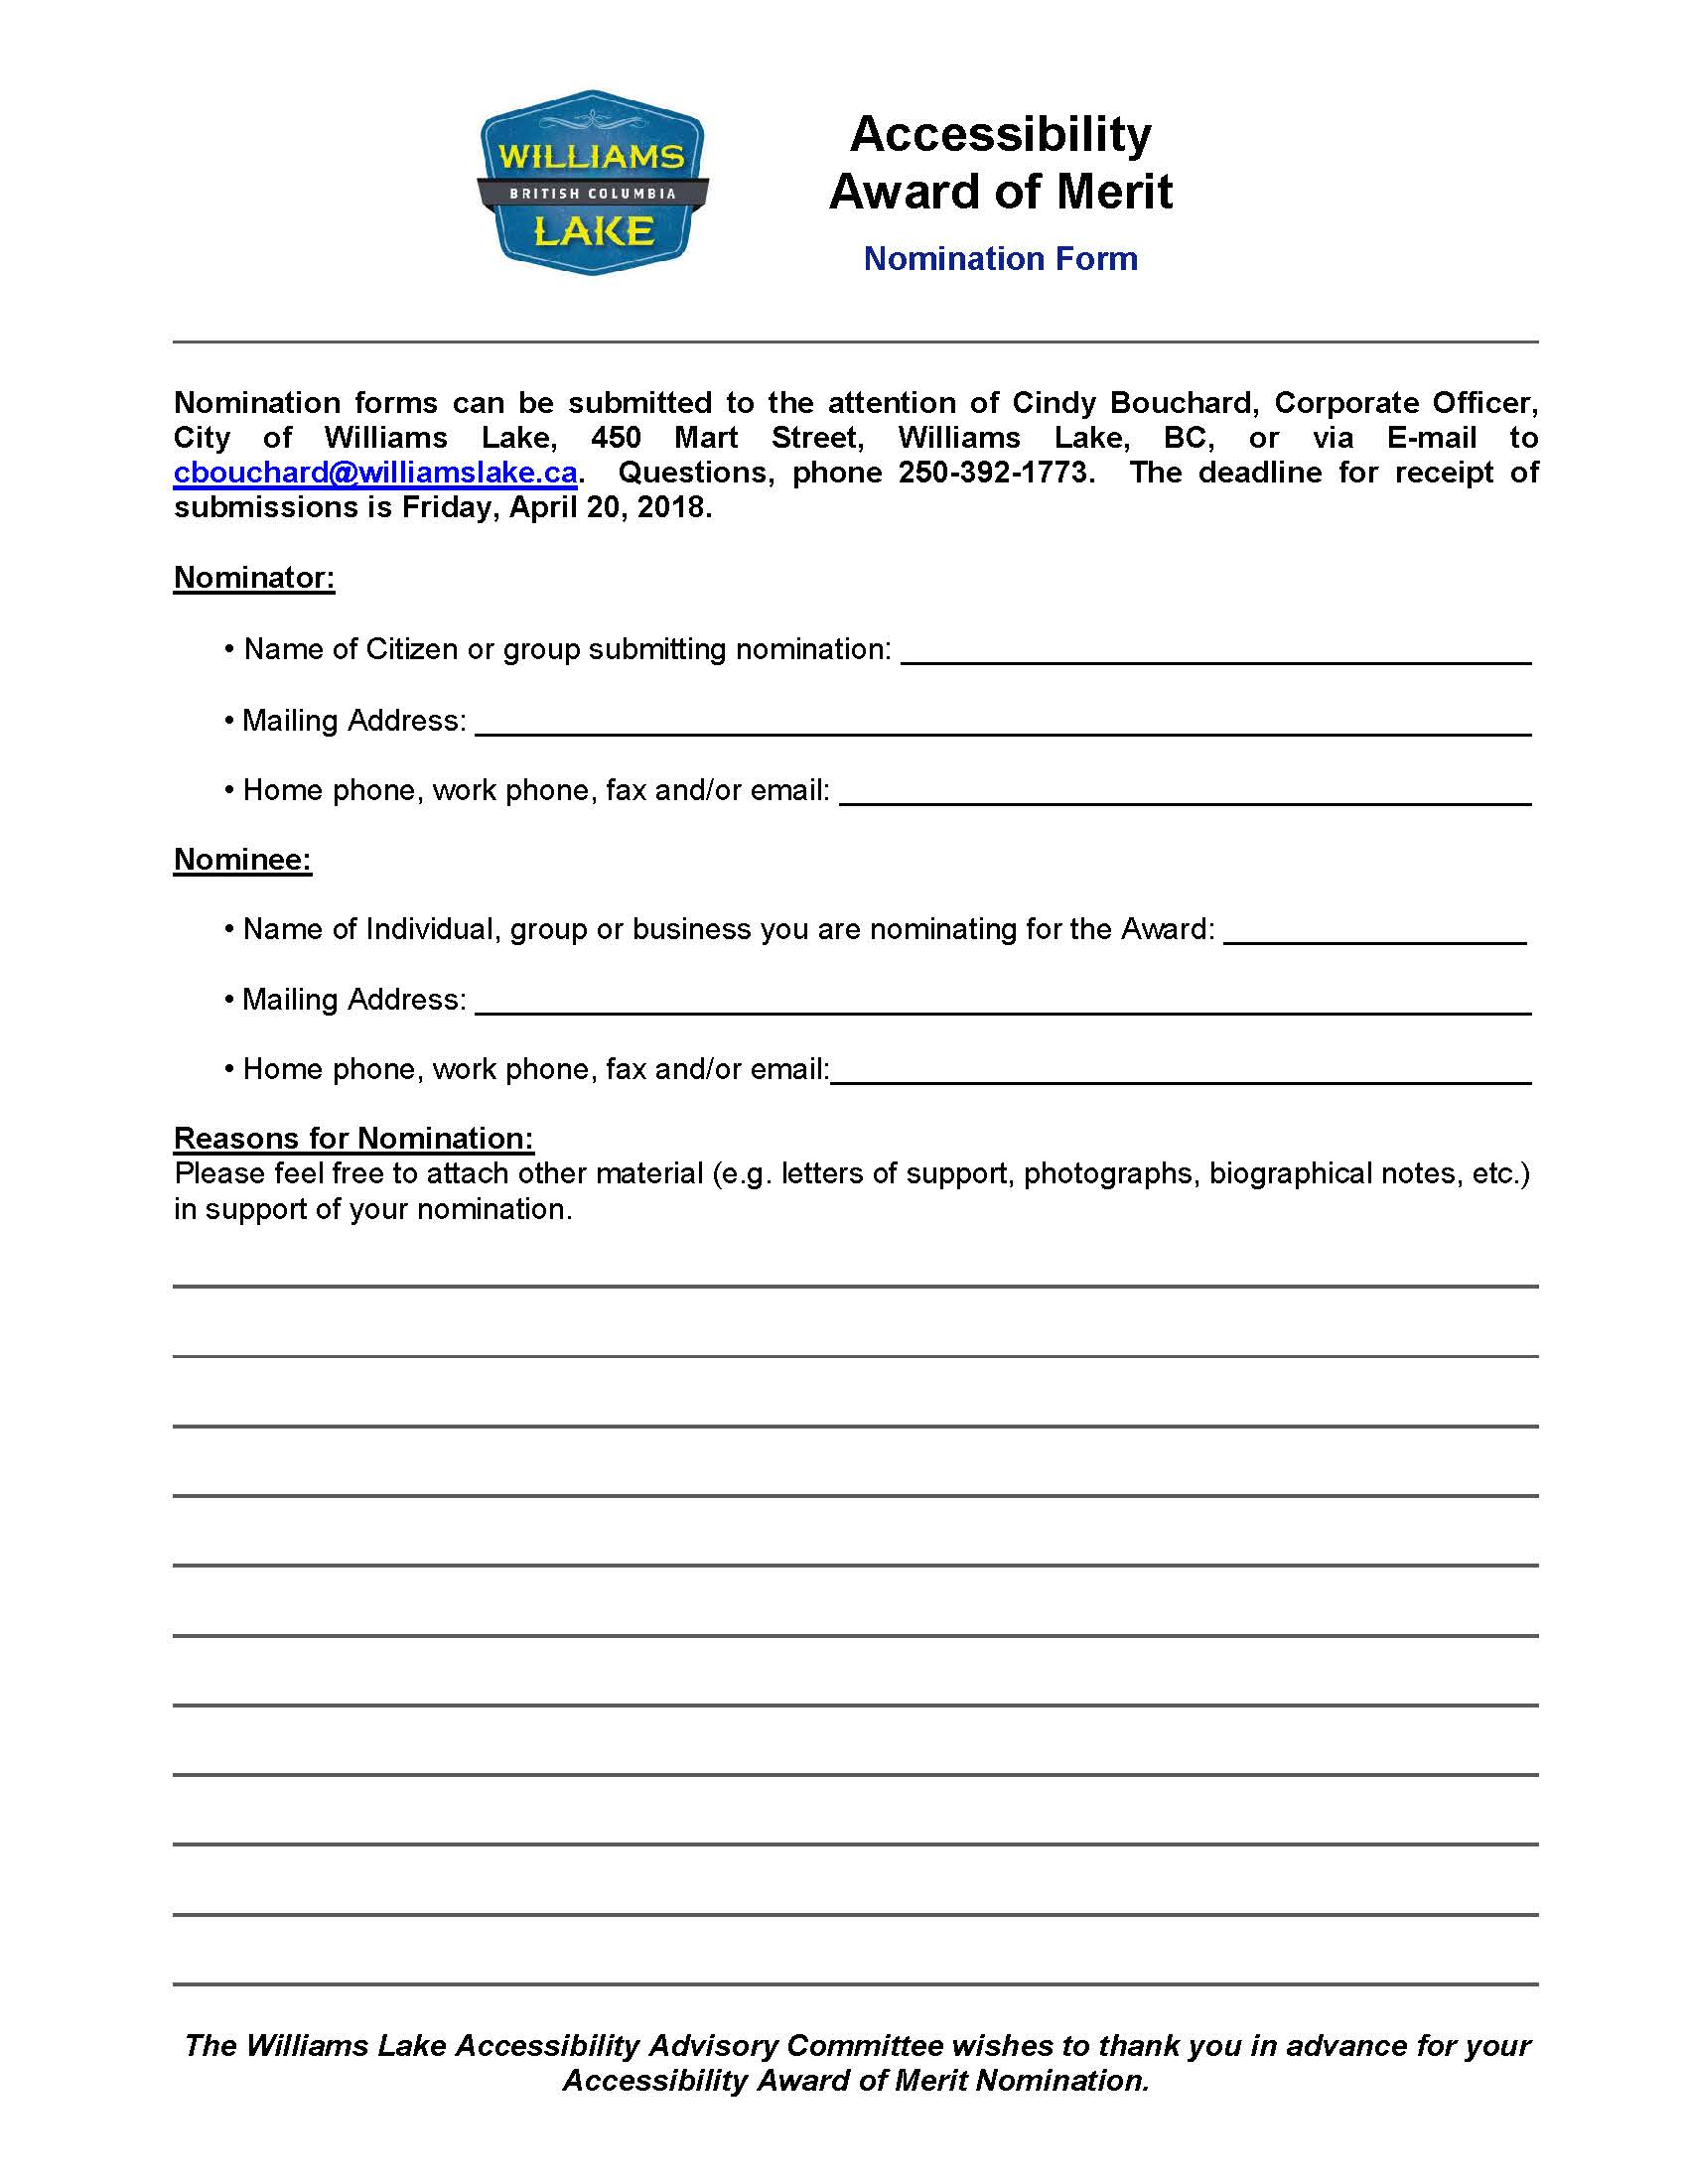 Accessibility Award Nomination Form 2017